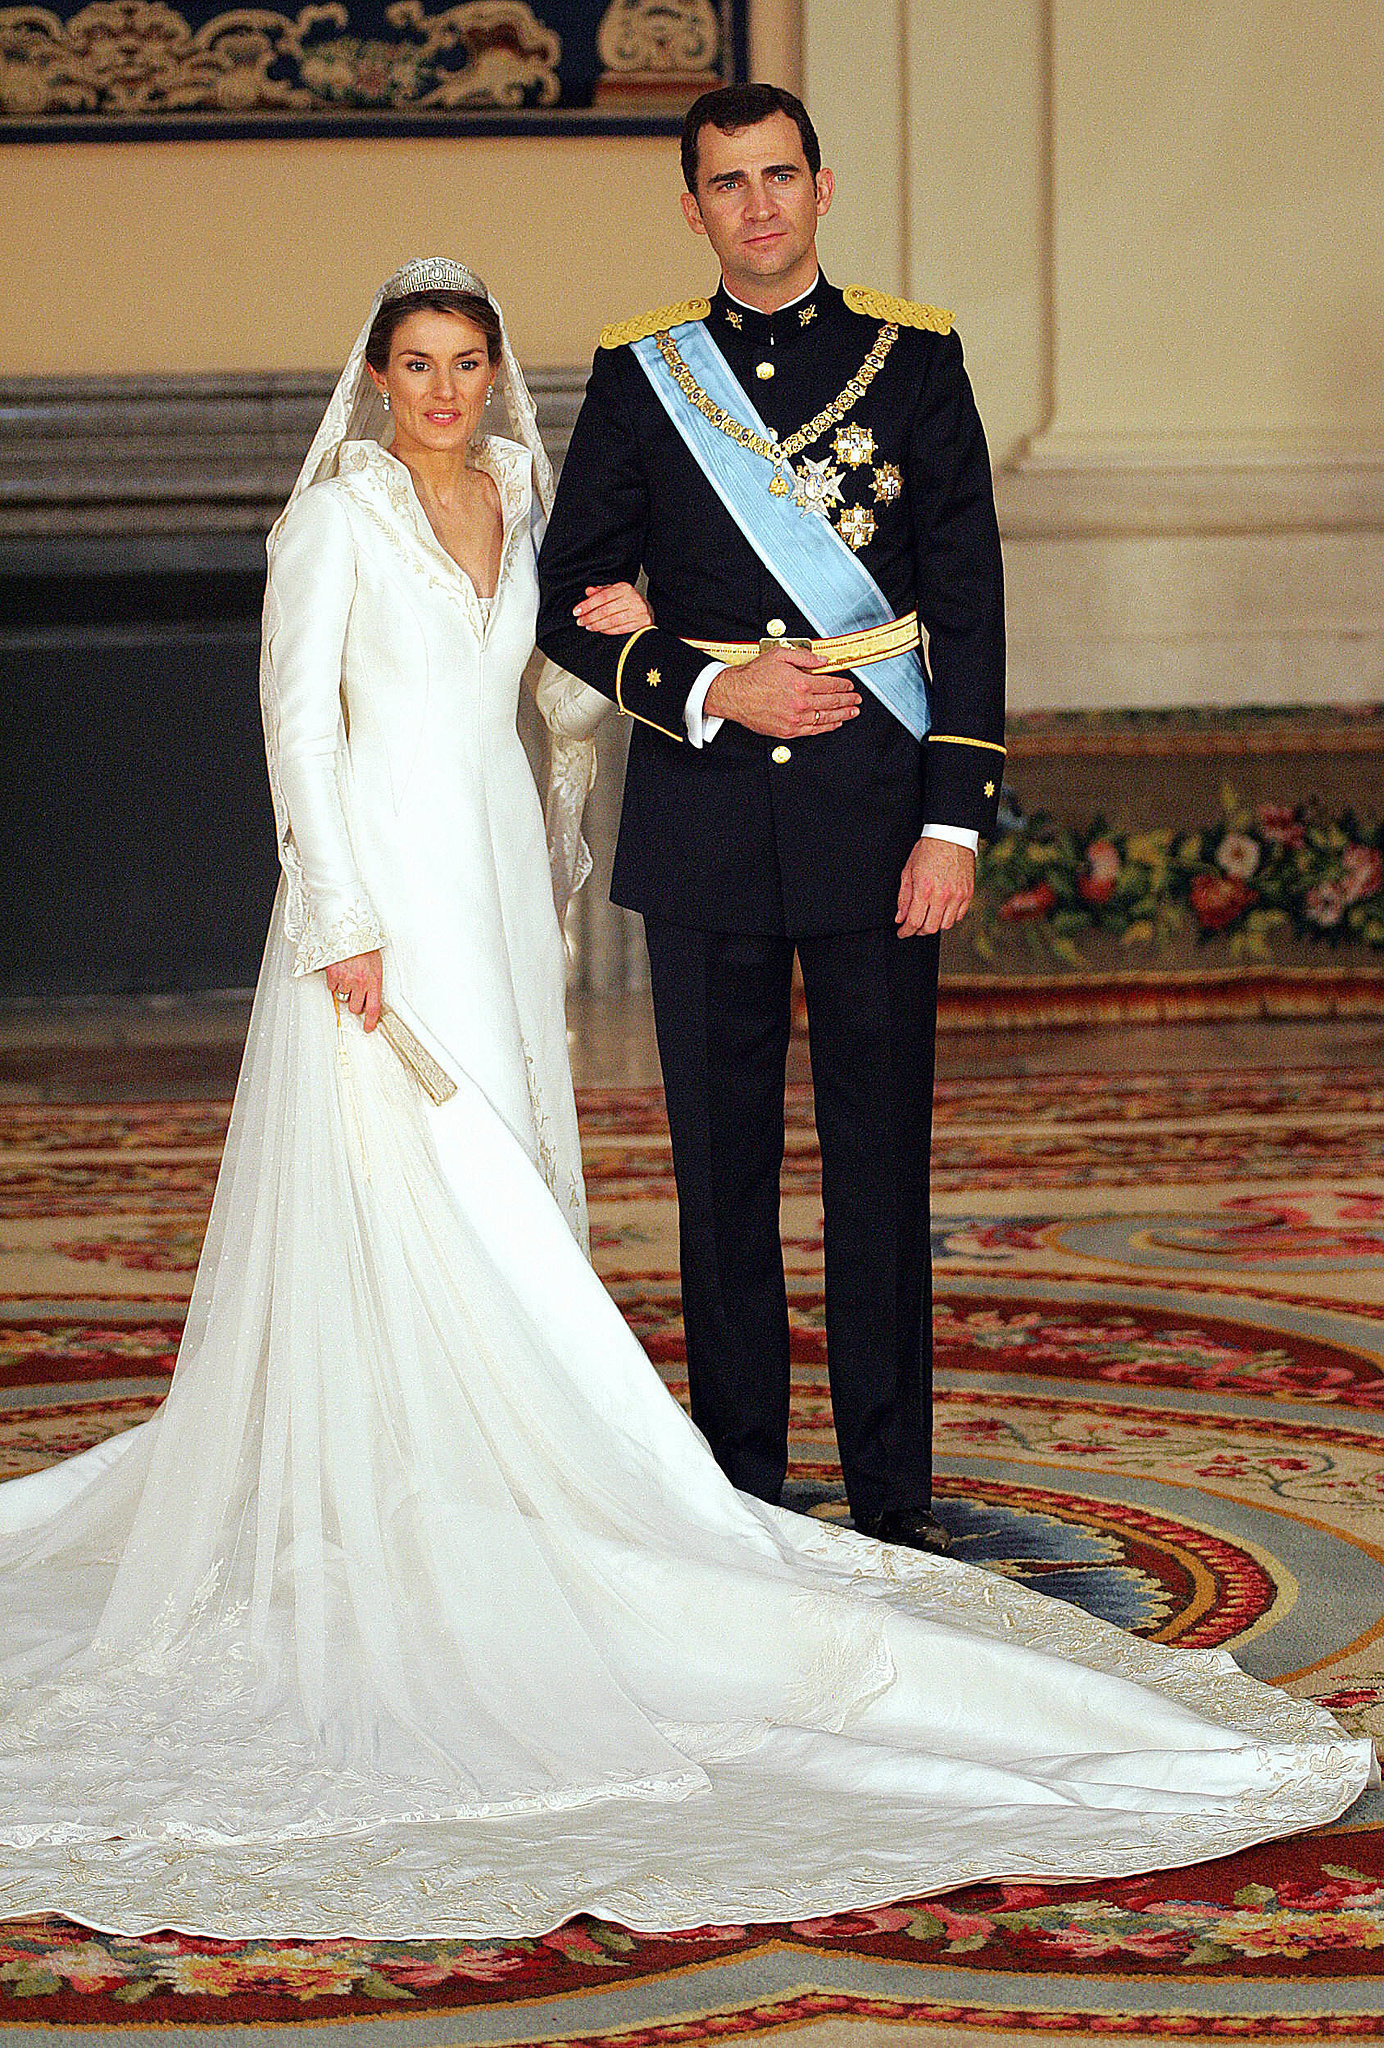 Prince Felipe and Princess Letizia got married on May 22, 2004.